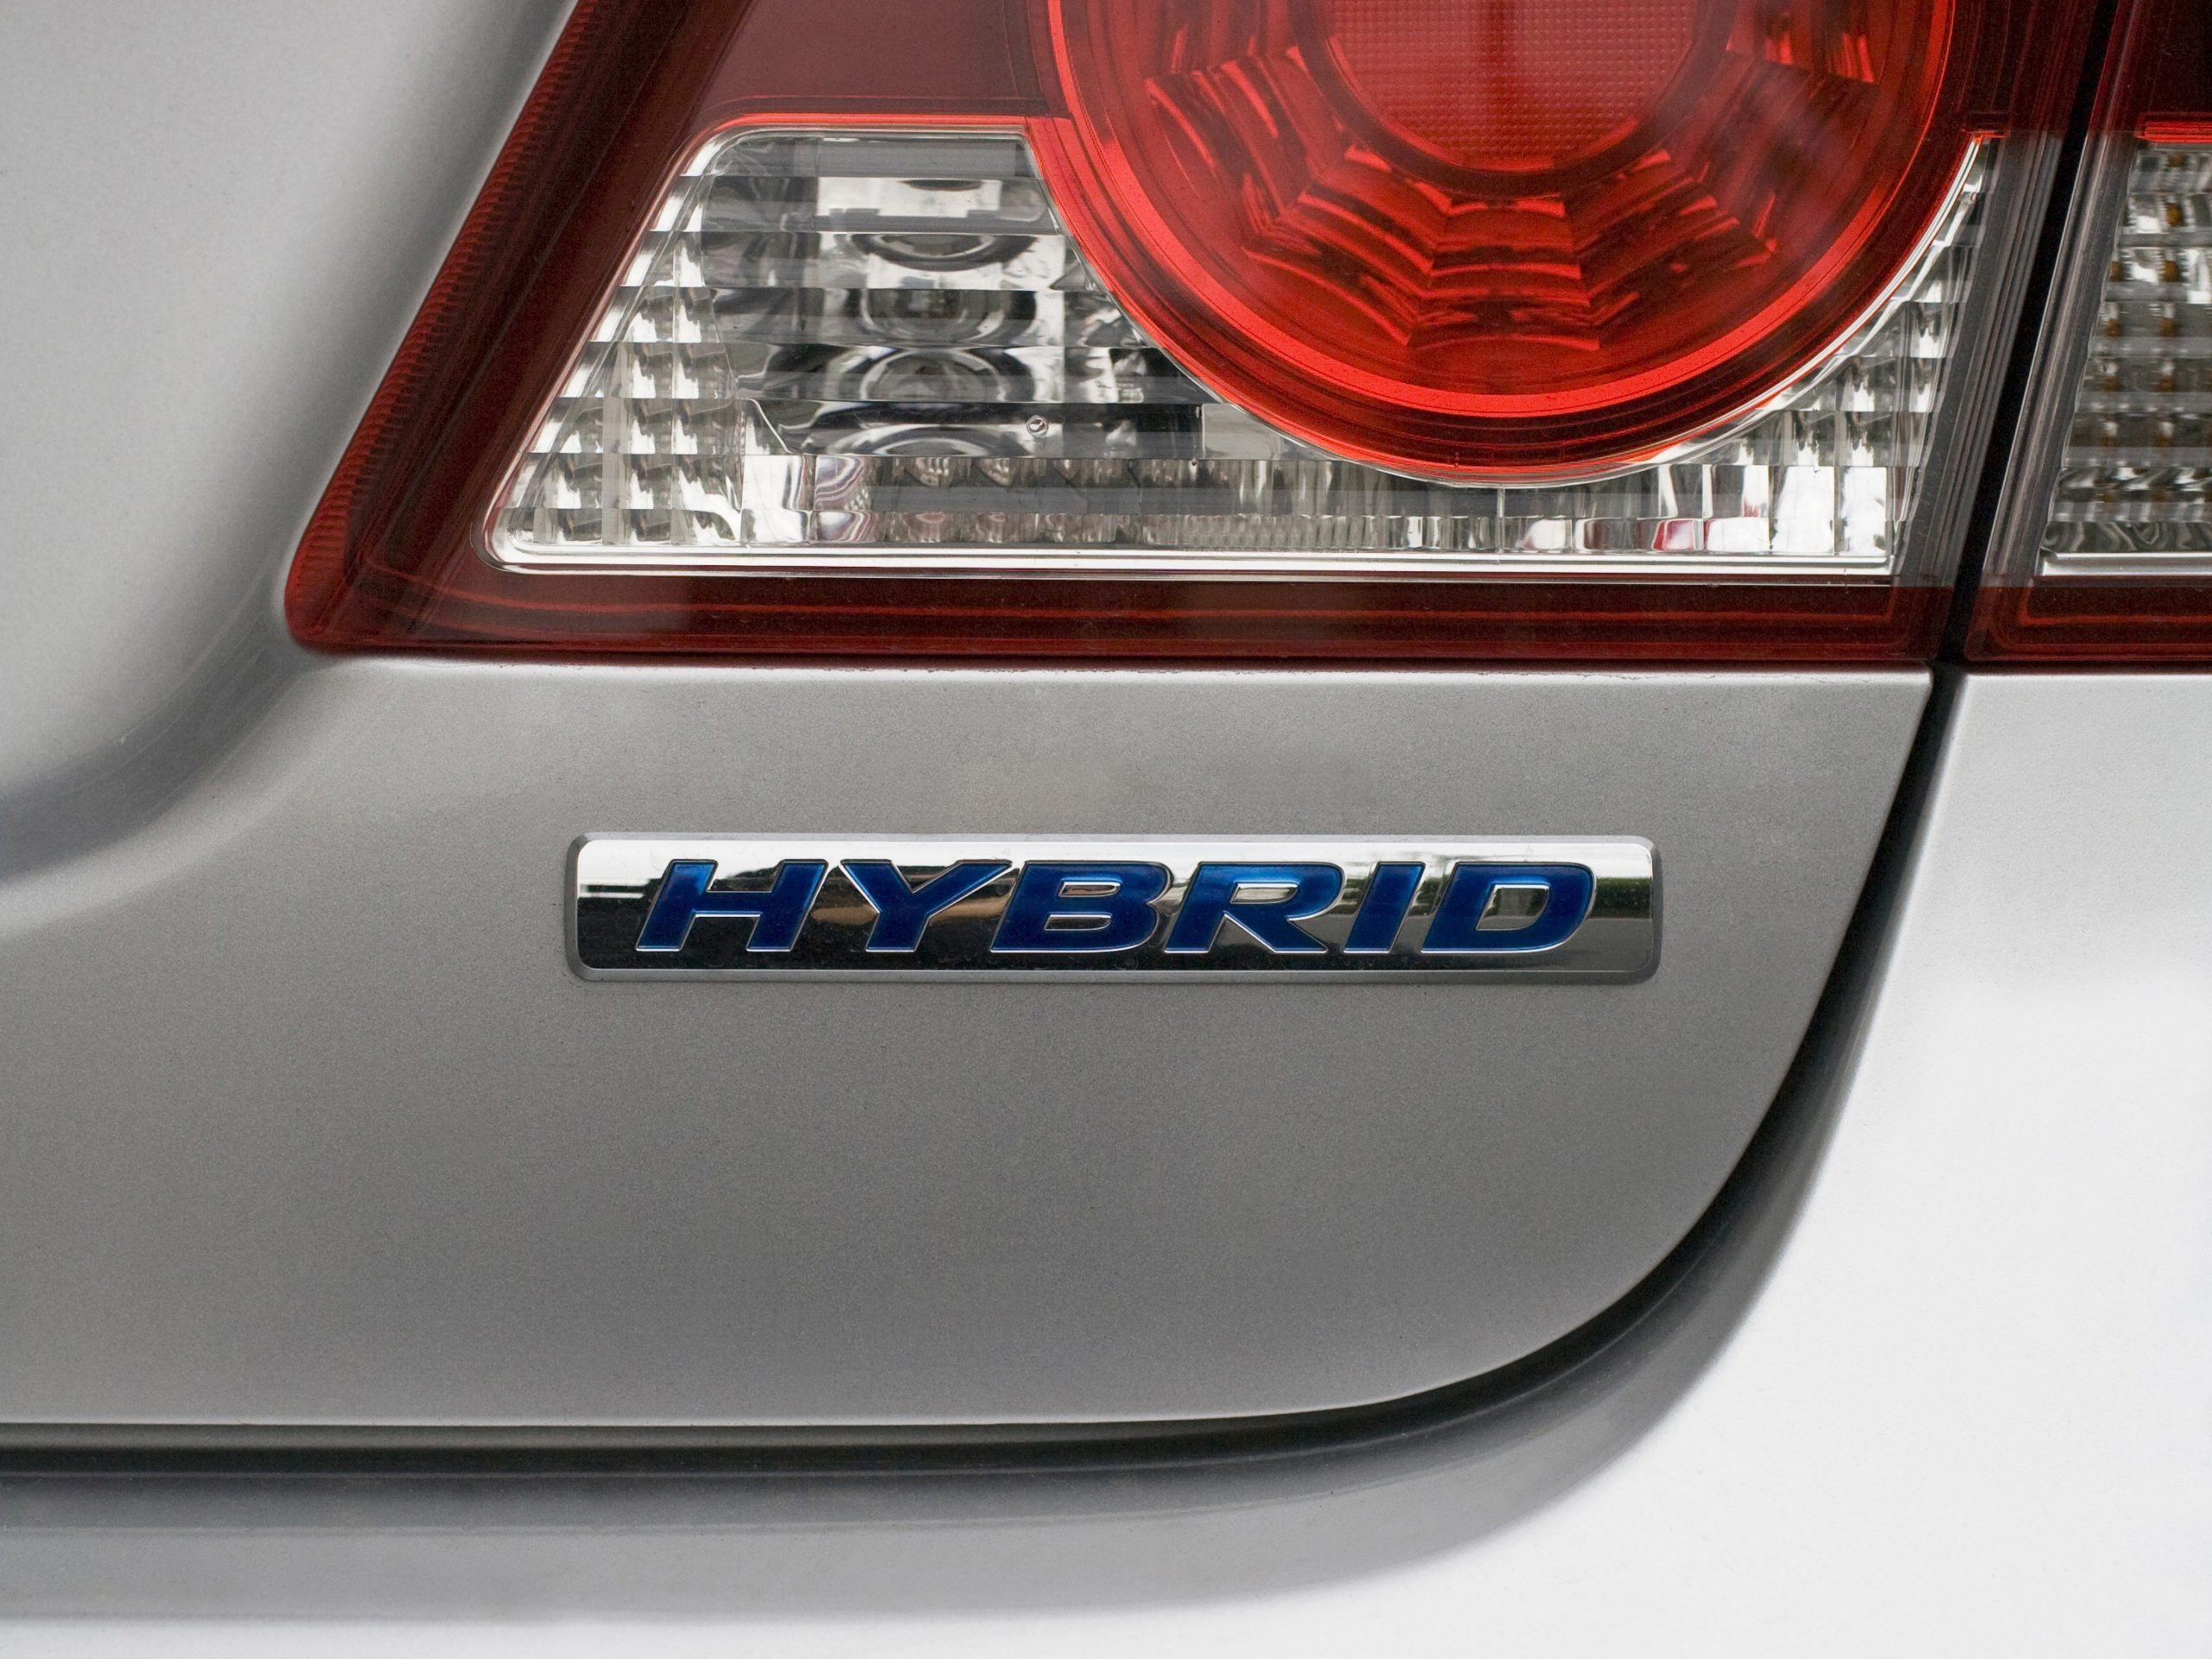 The problem with hybrid cars